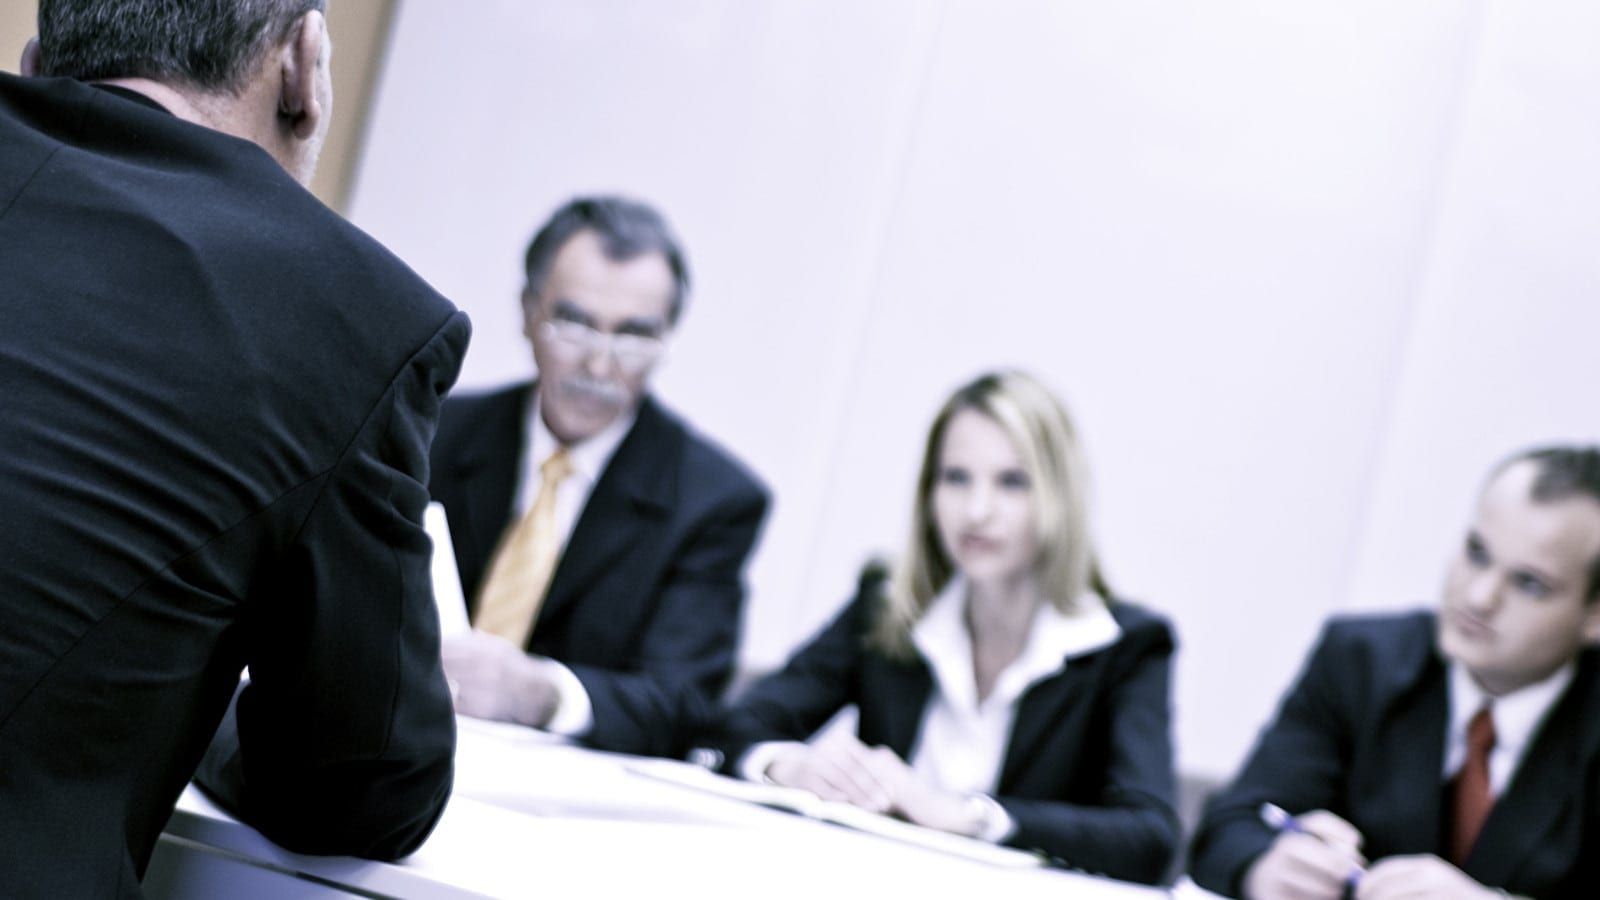 Lawyer Mediation Meeting Stock Photo